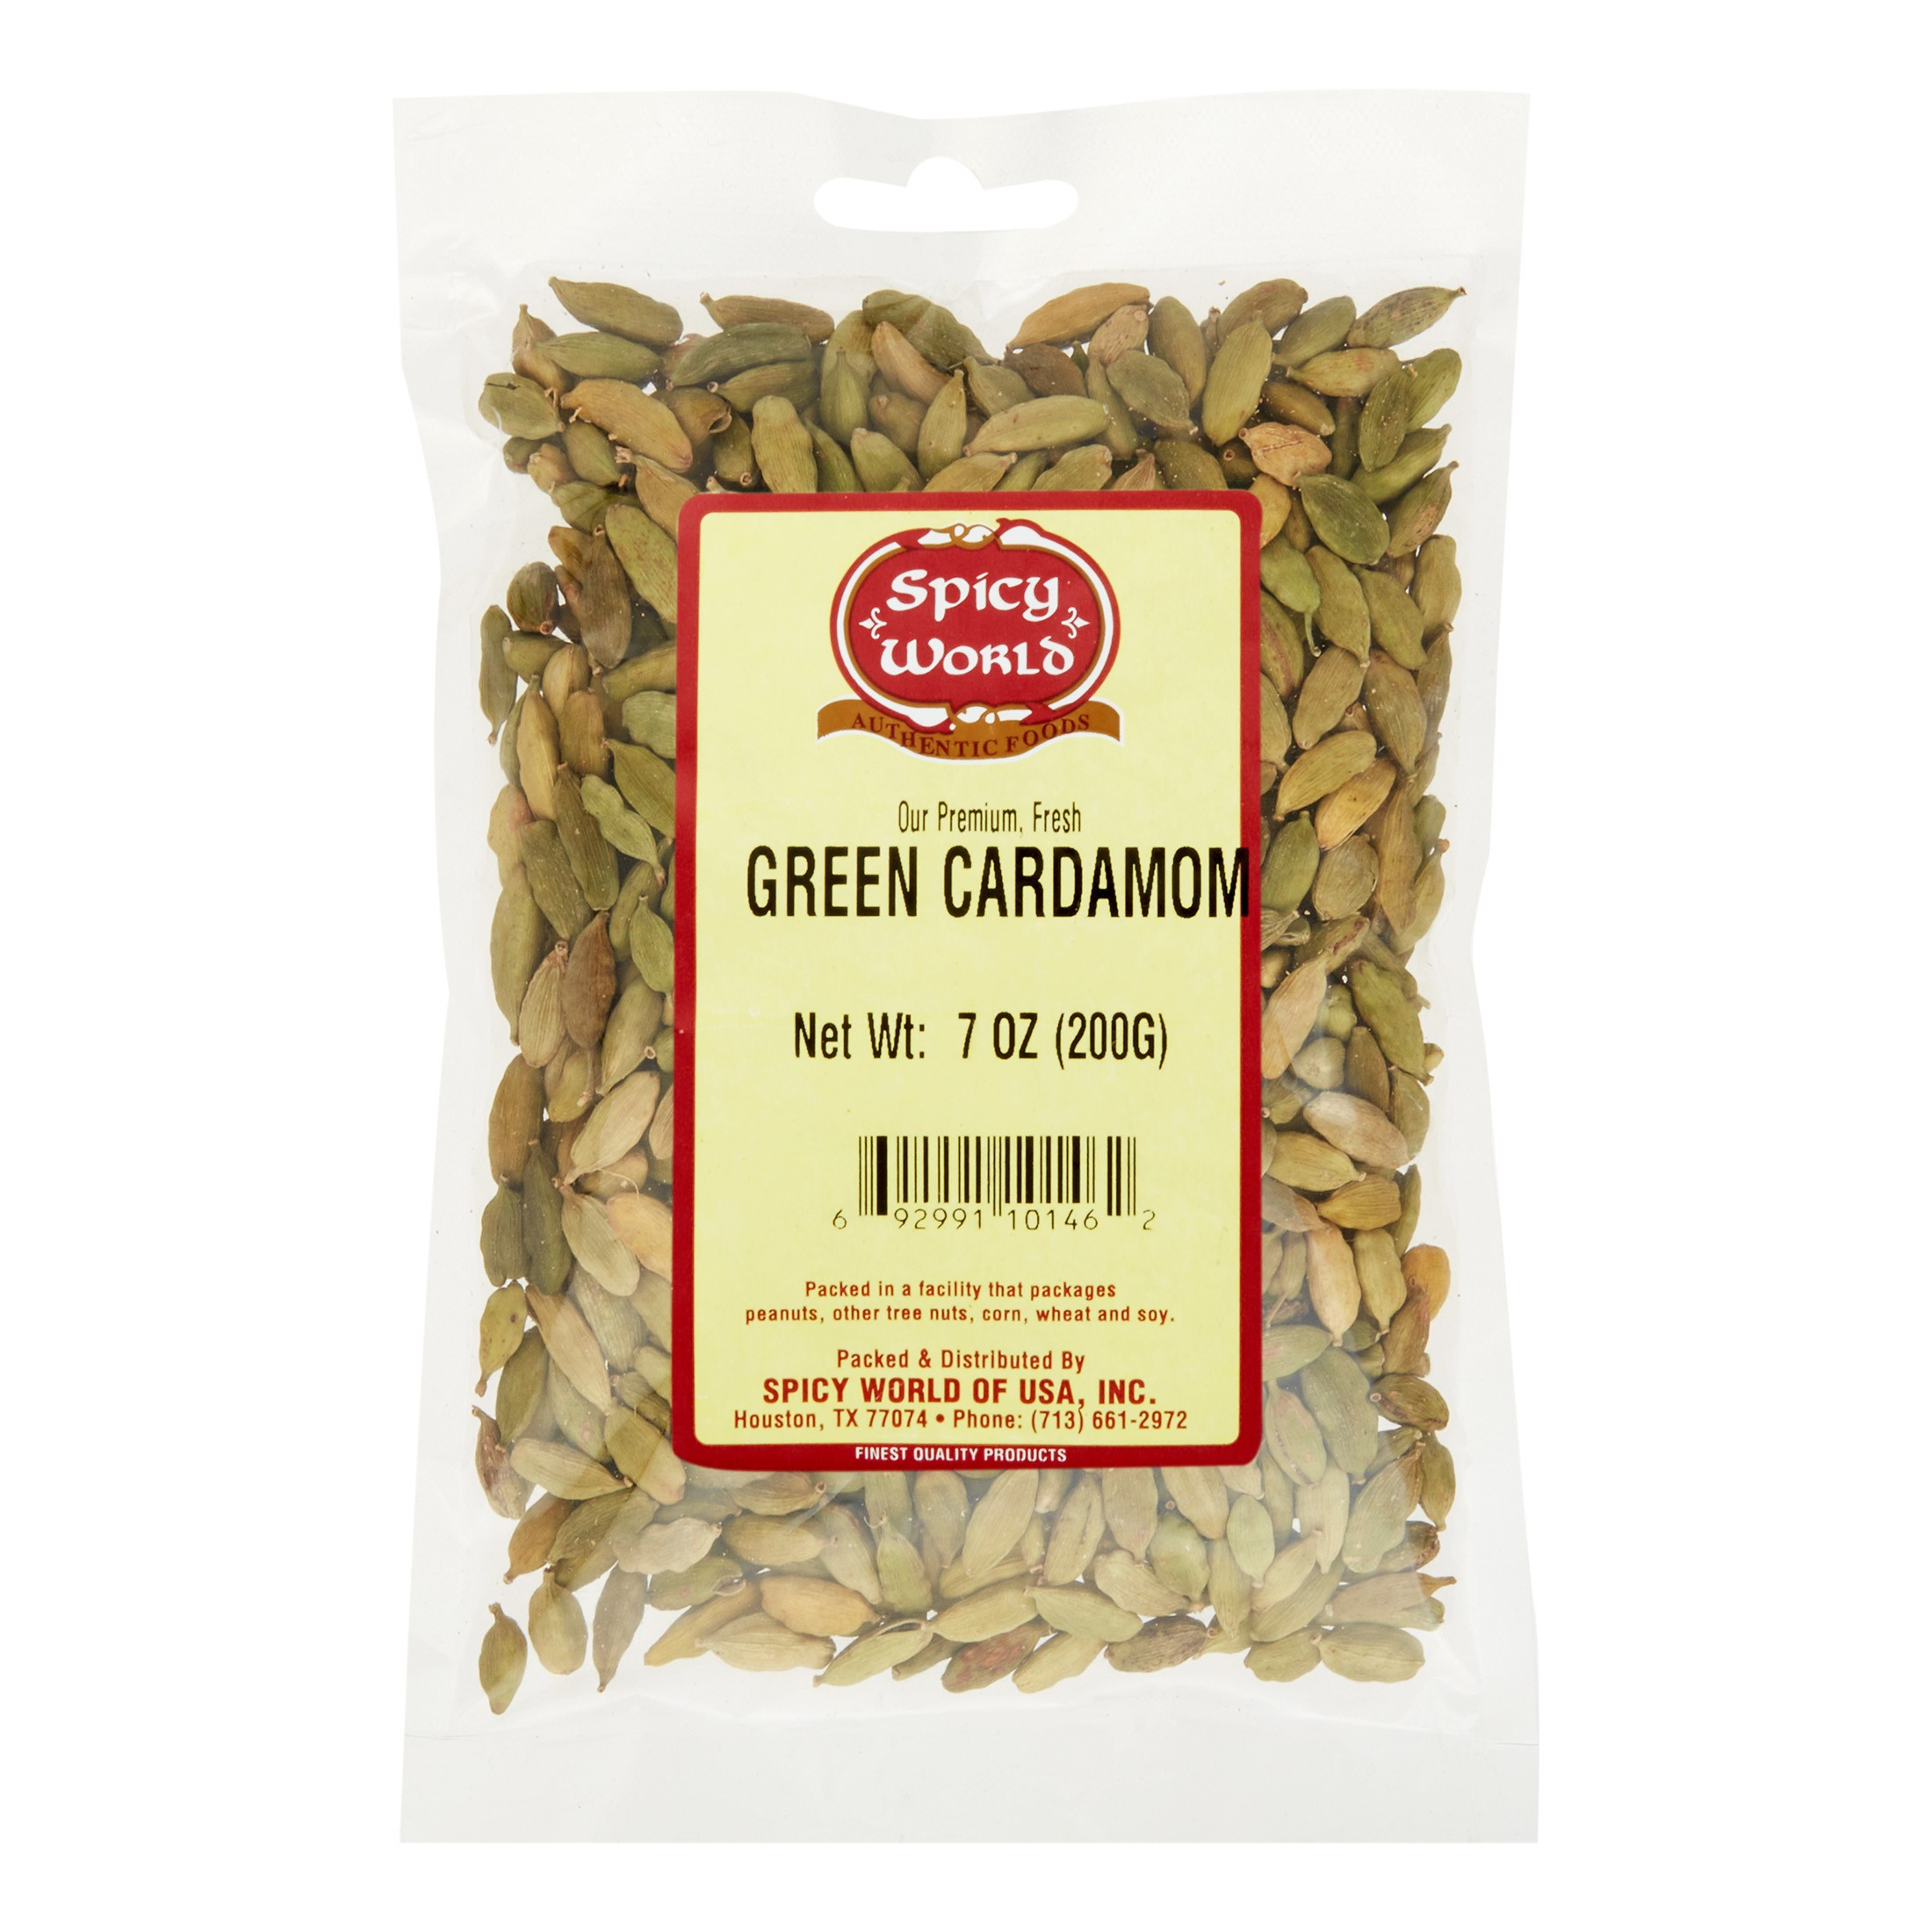 Spicy World Green Cardamom Pods Whole, 7 Oz